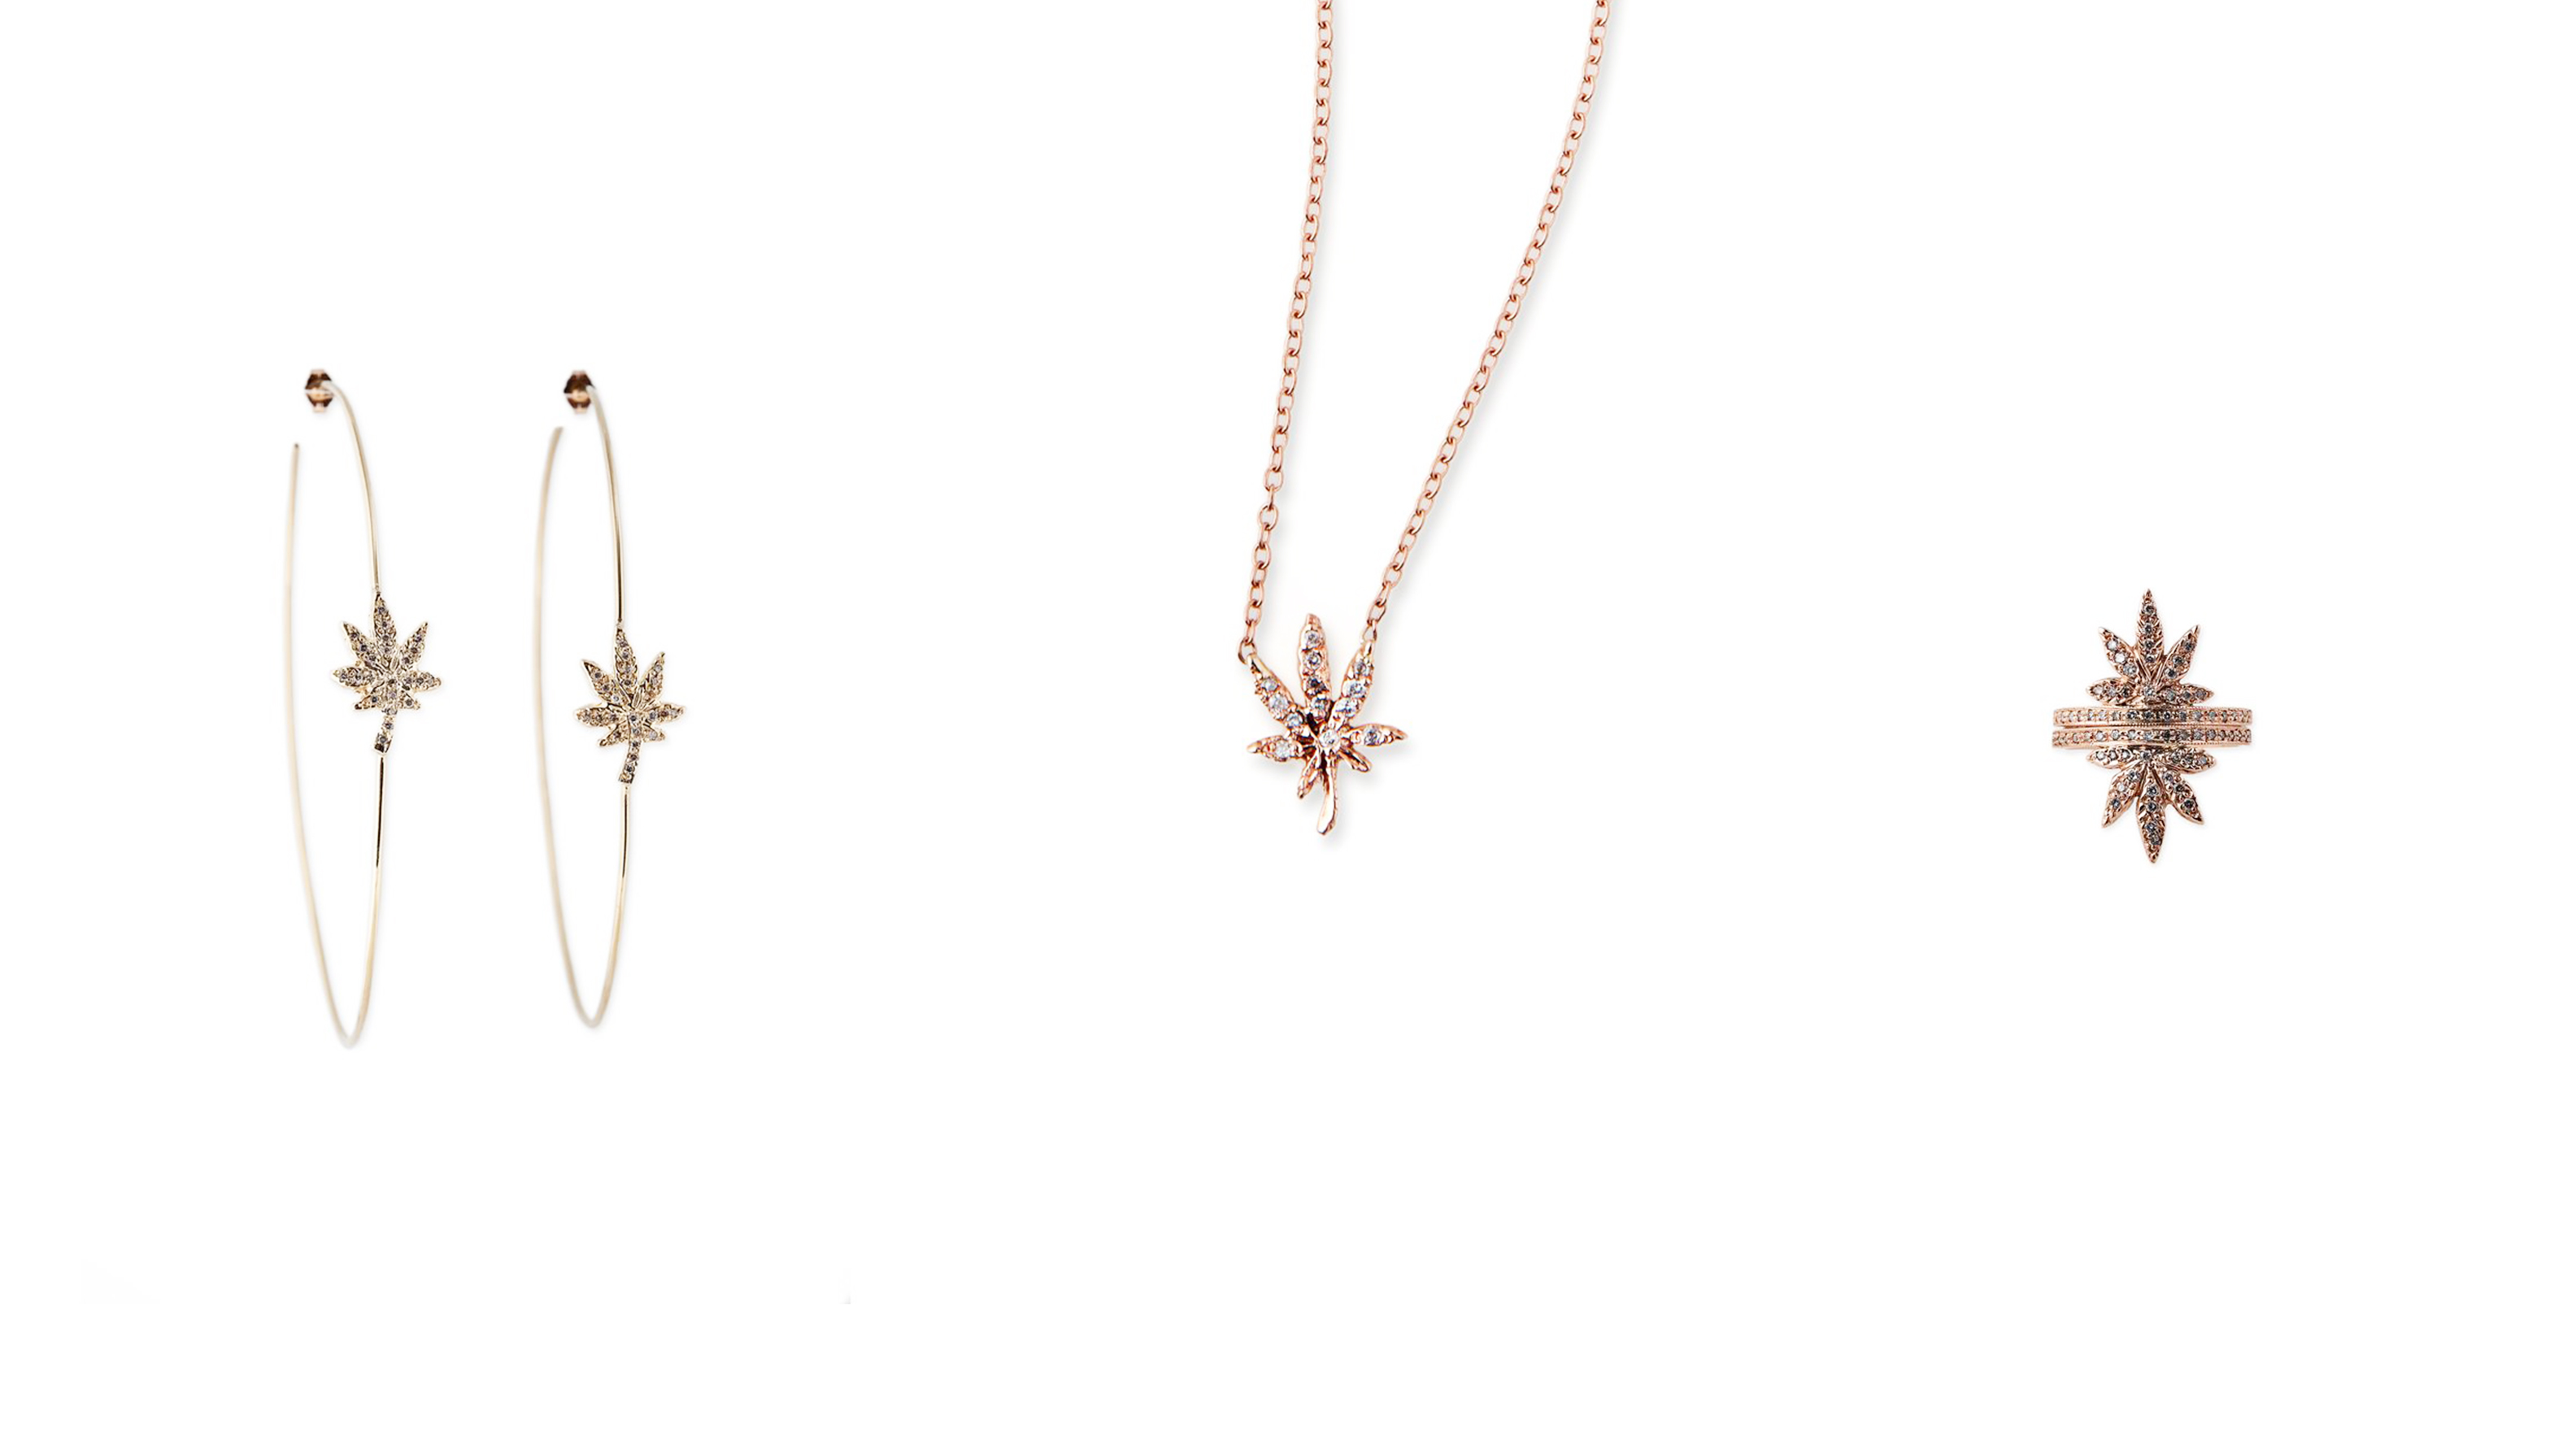 Why Jacquie Aiche Creates Diamond-Studded, Cannabis-Themed Bling